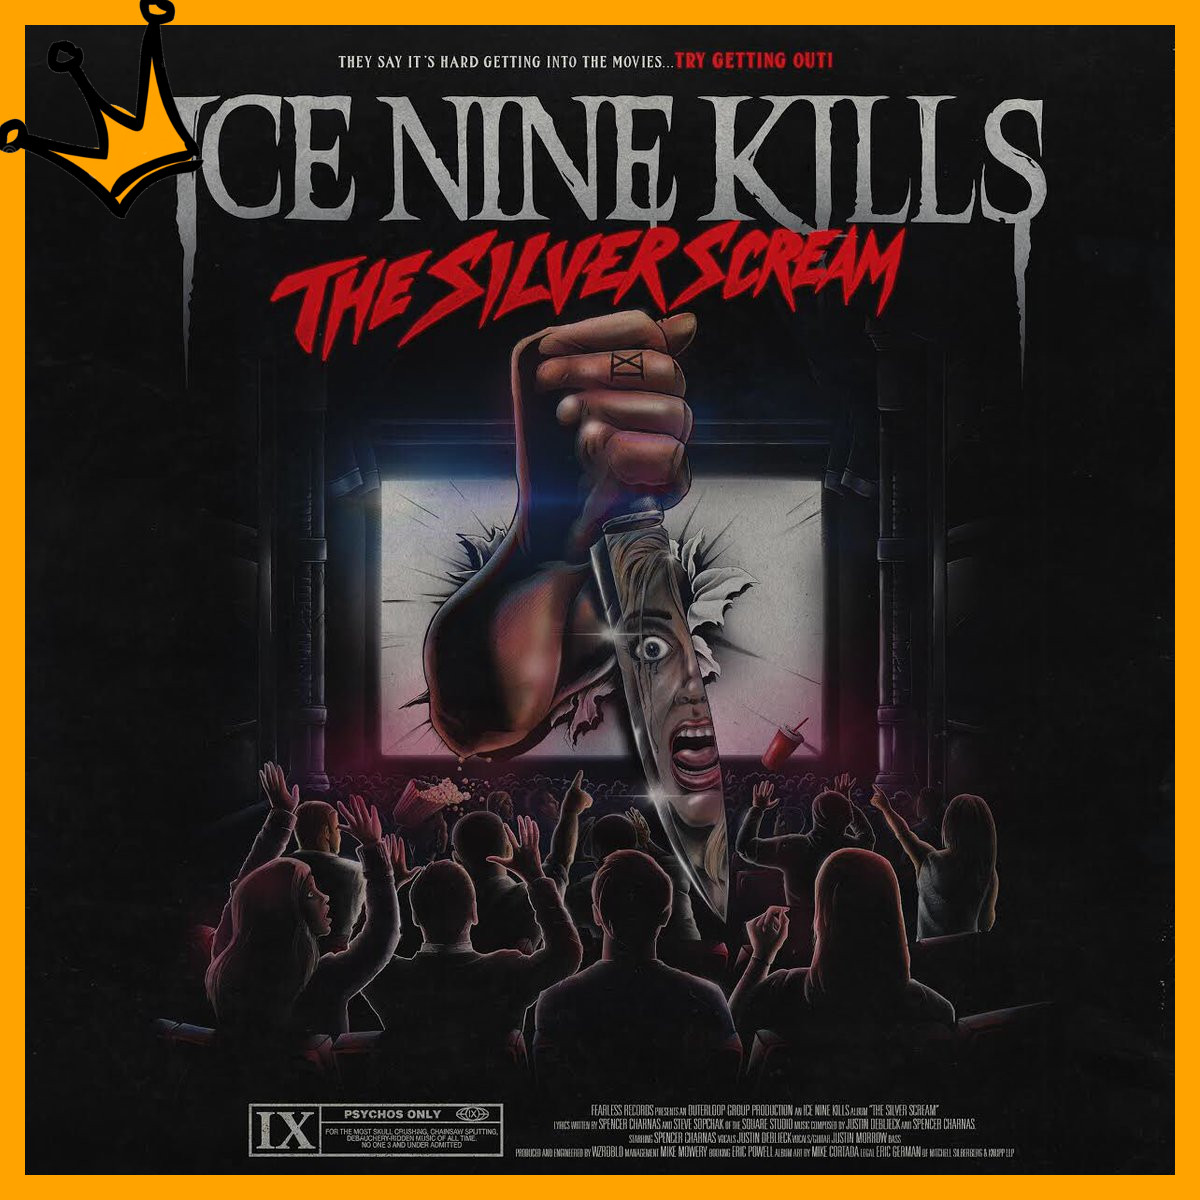 ICE NINE KILLS × THE SILVER SCREAM